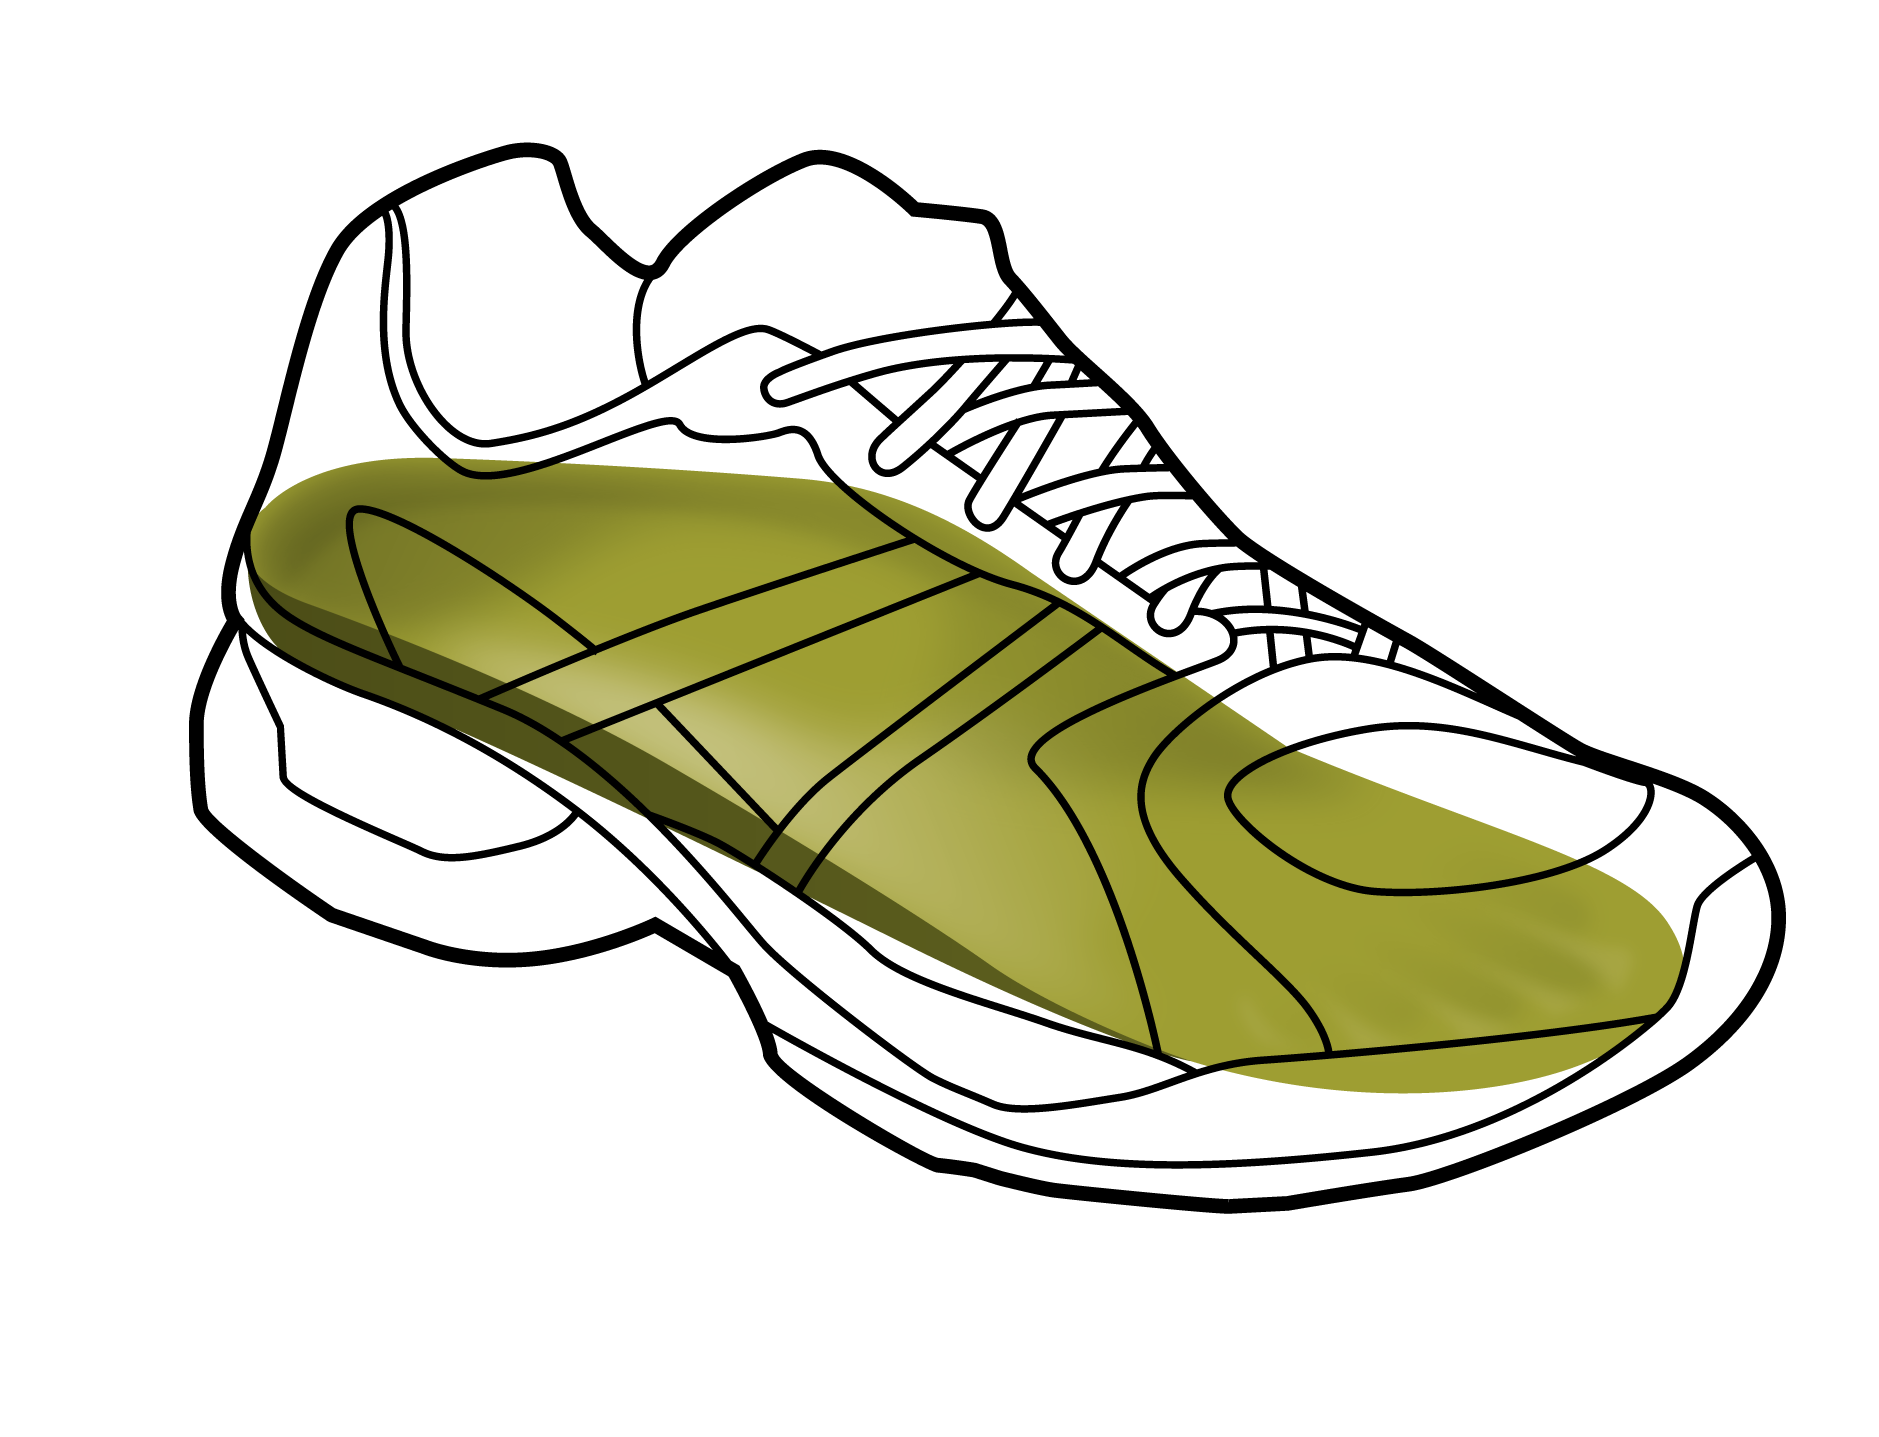 Cross country running shoe clipart image download Running Shoe Drawing at GetDrawings.com | Free for personal use ... image download